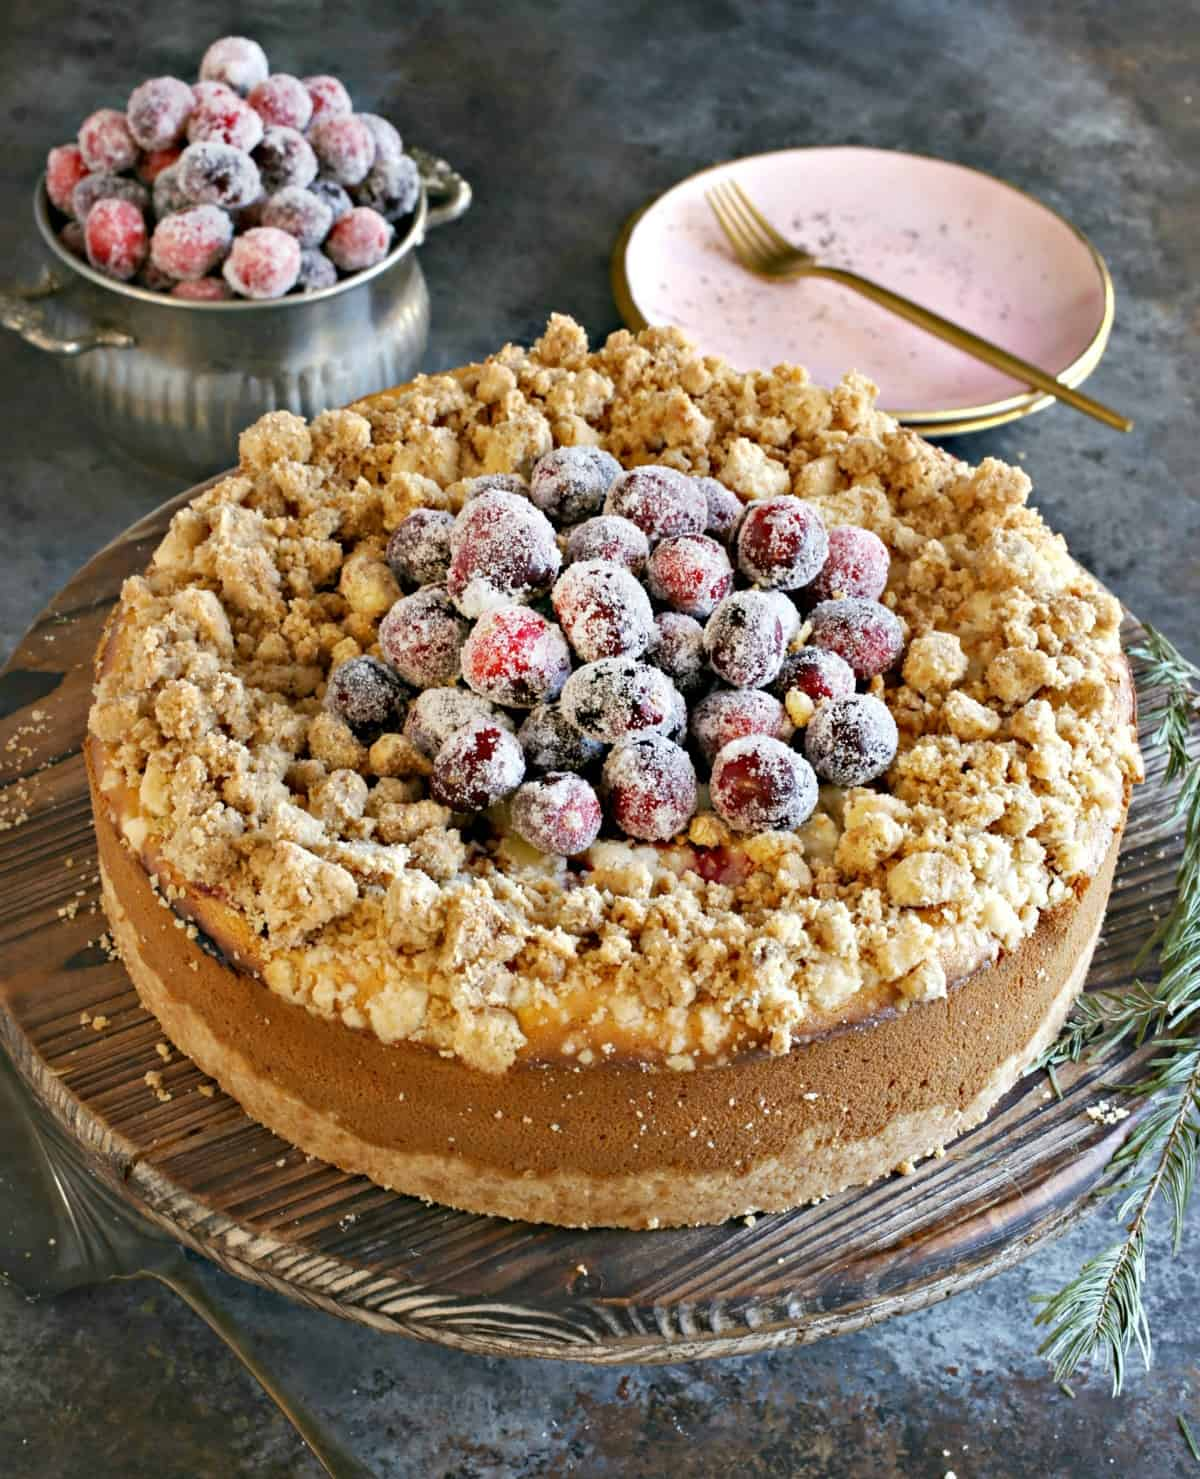 Cranberry cheesecake uncut on a wooden cake platter.